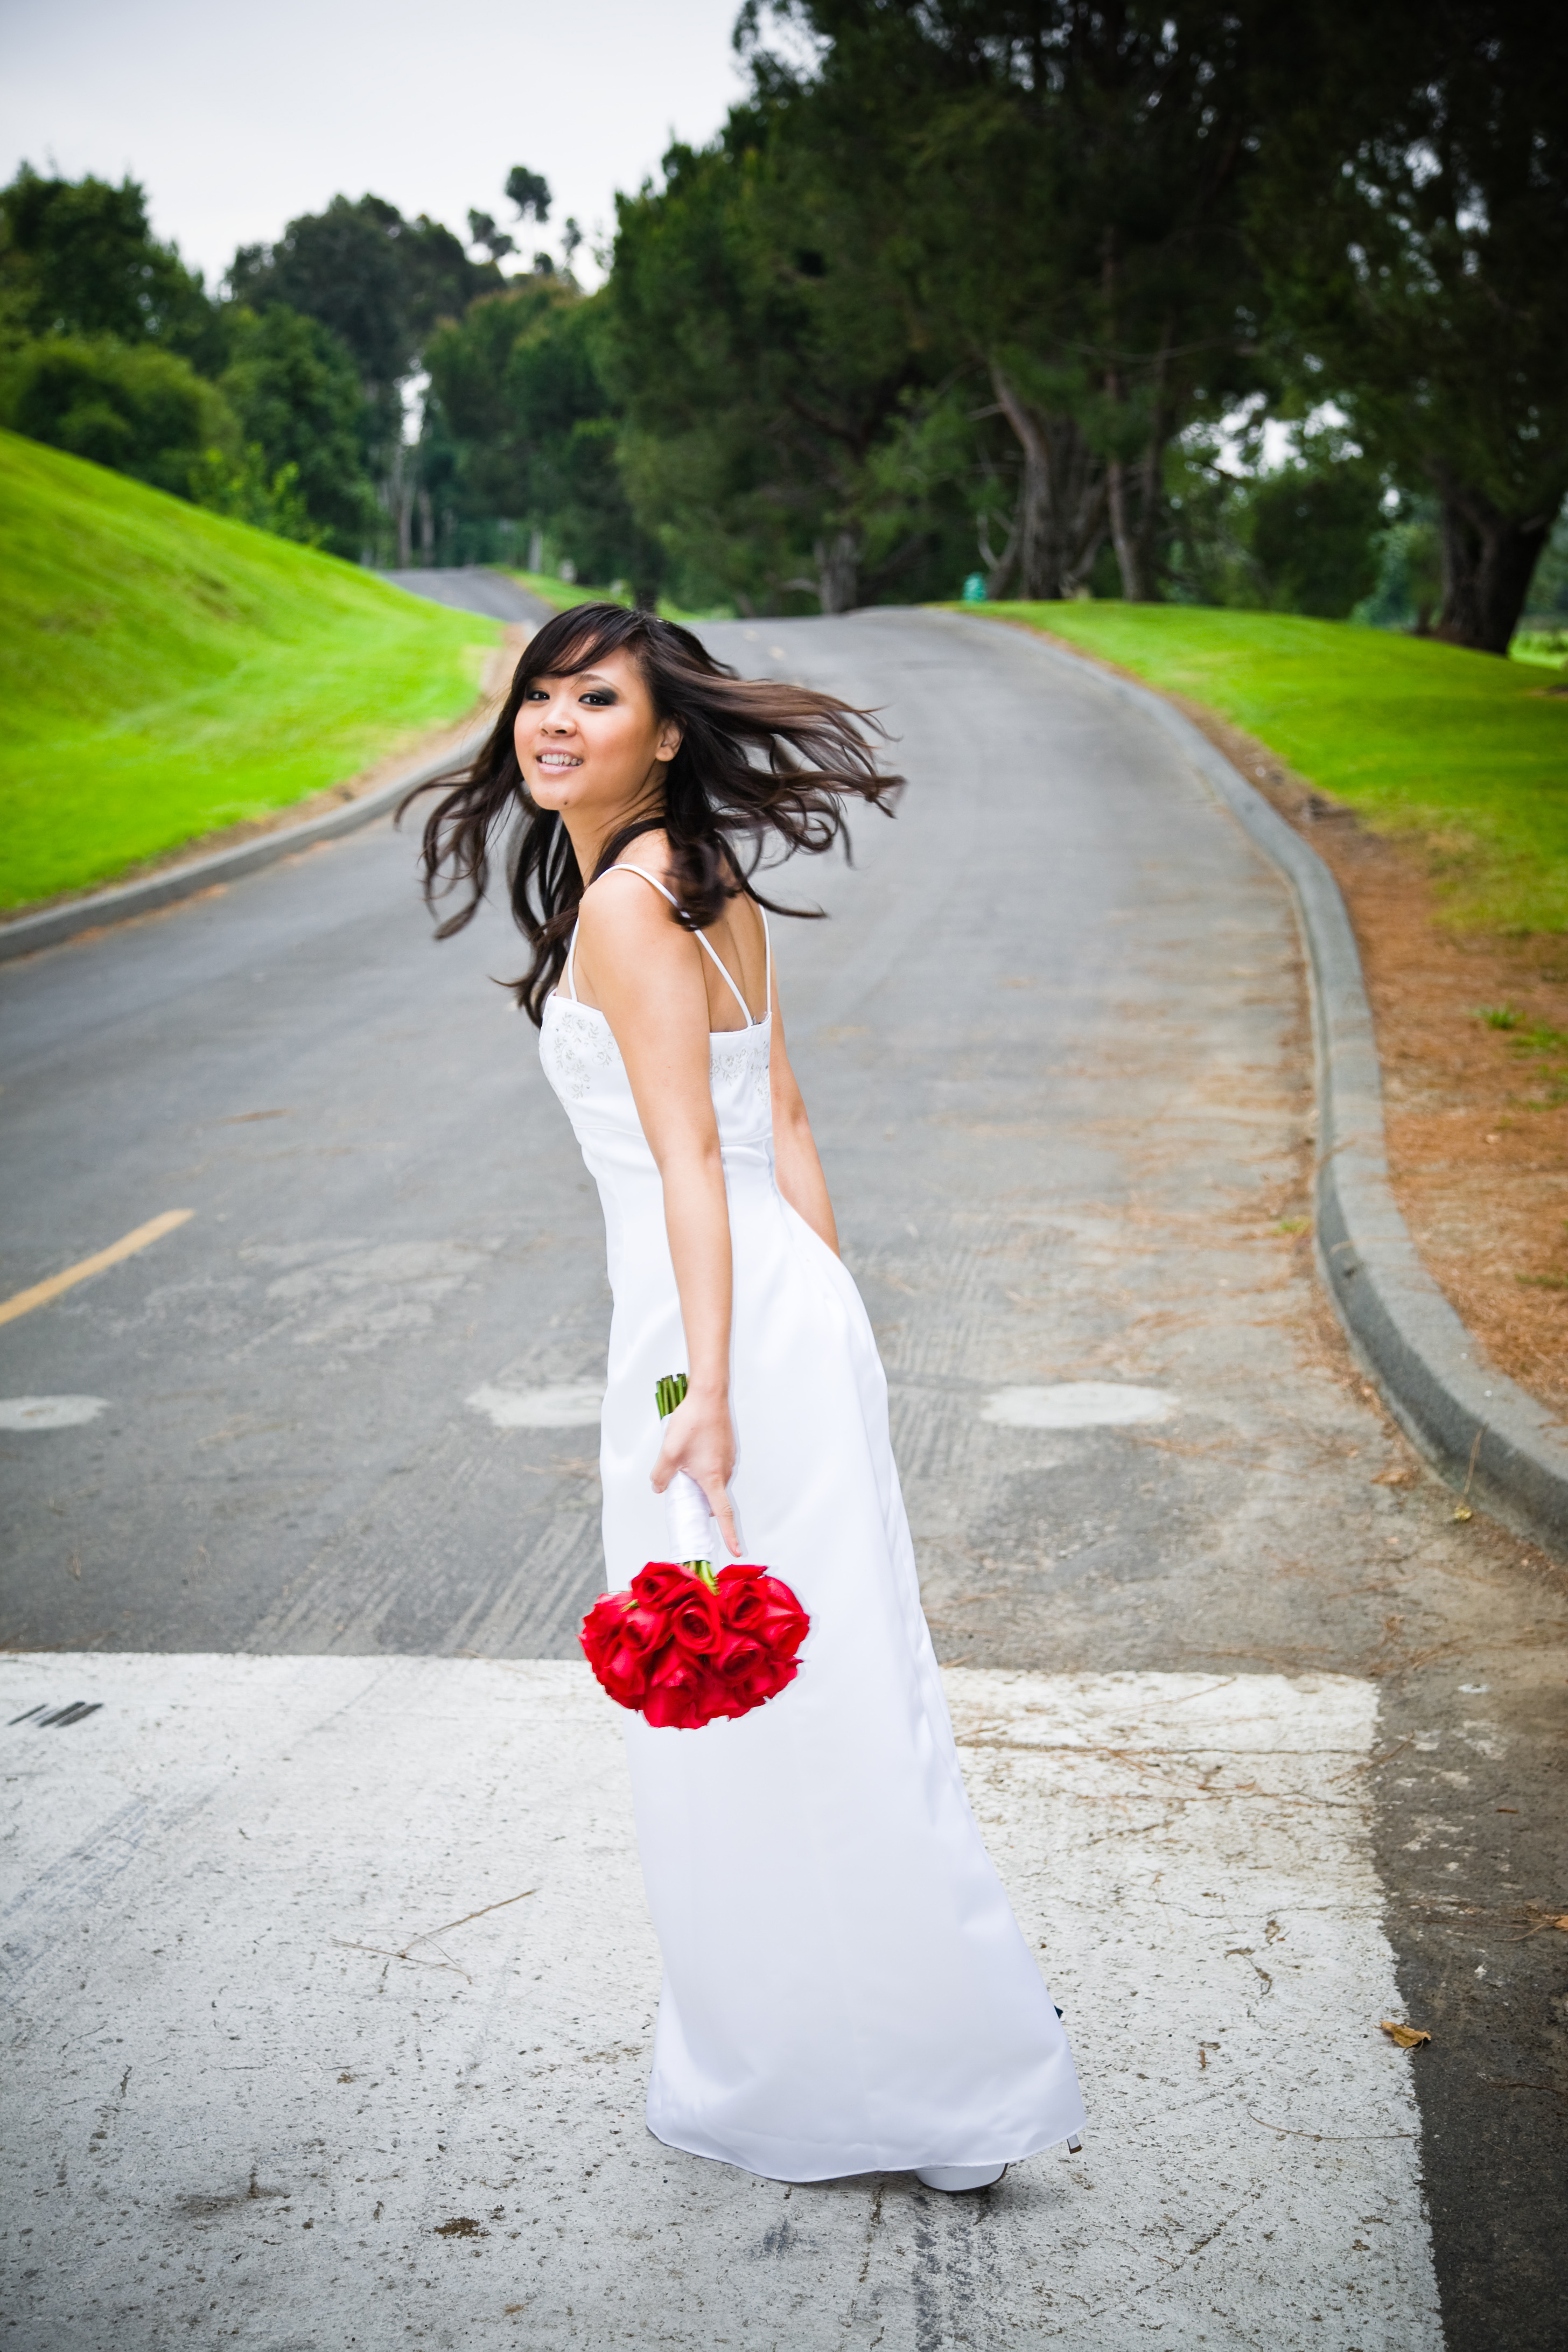 Flowers & Decor, white, red, Bride Bouquets, Bride, Flowers, Asian, Beautiful, Sky, Road, Allen taylor photography